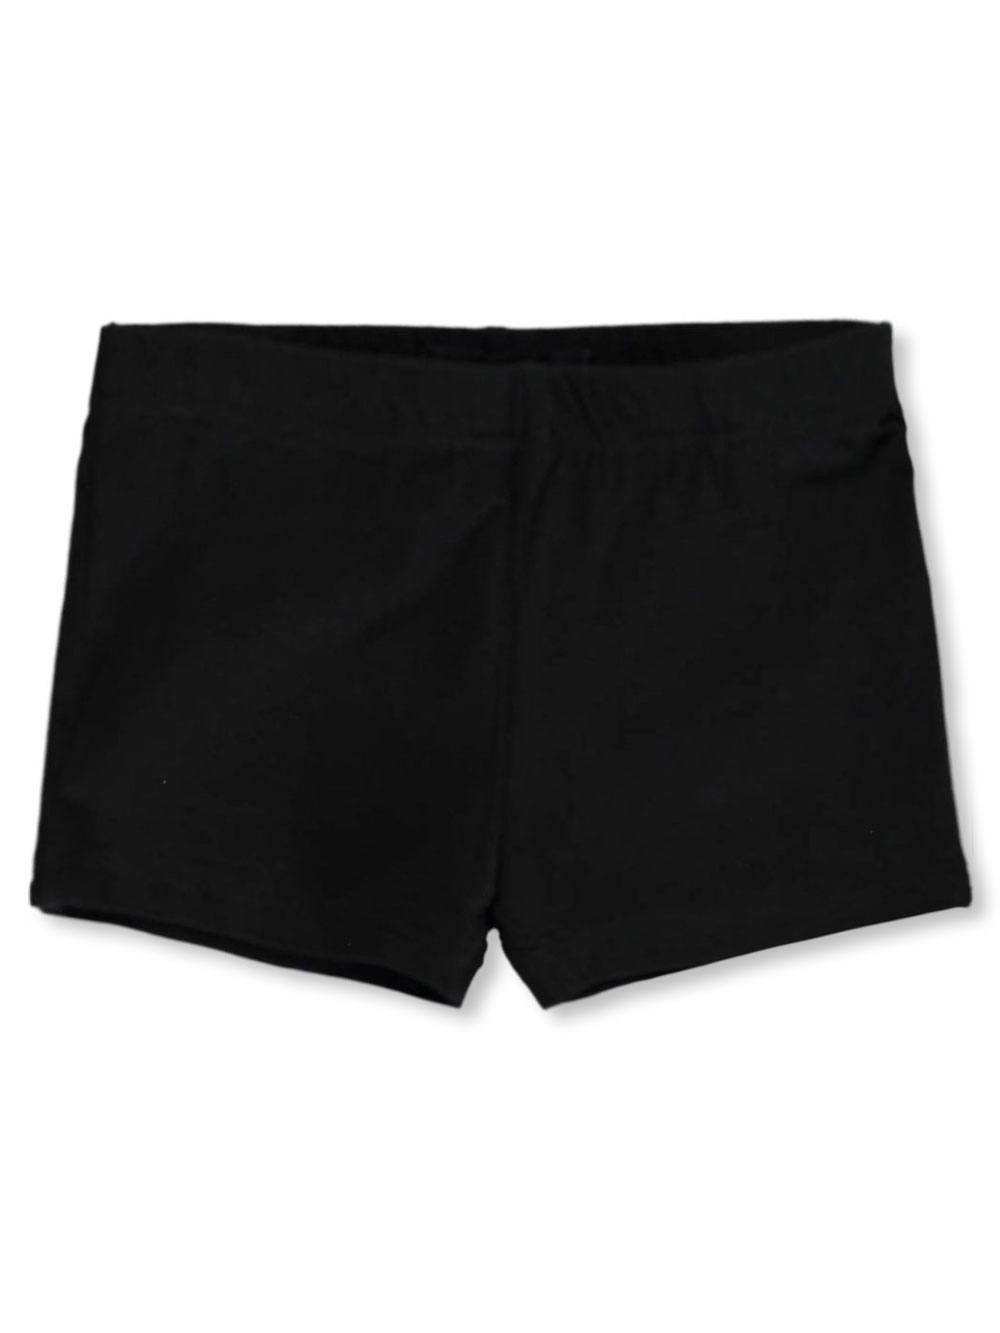 Size 3t Shorts for Girls